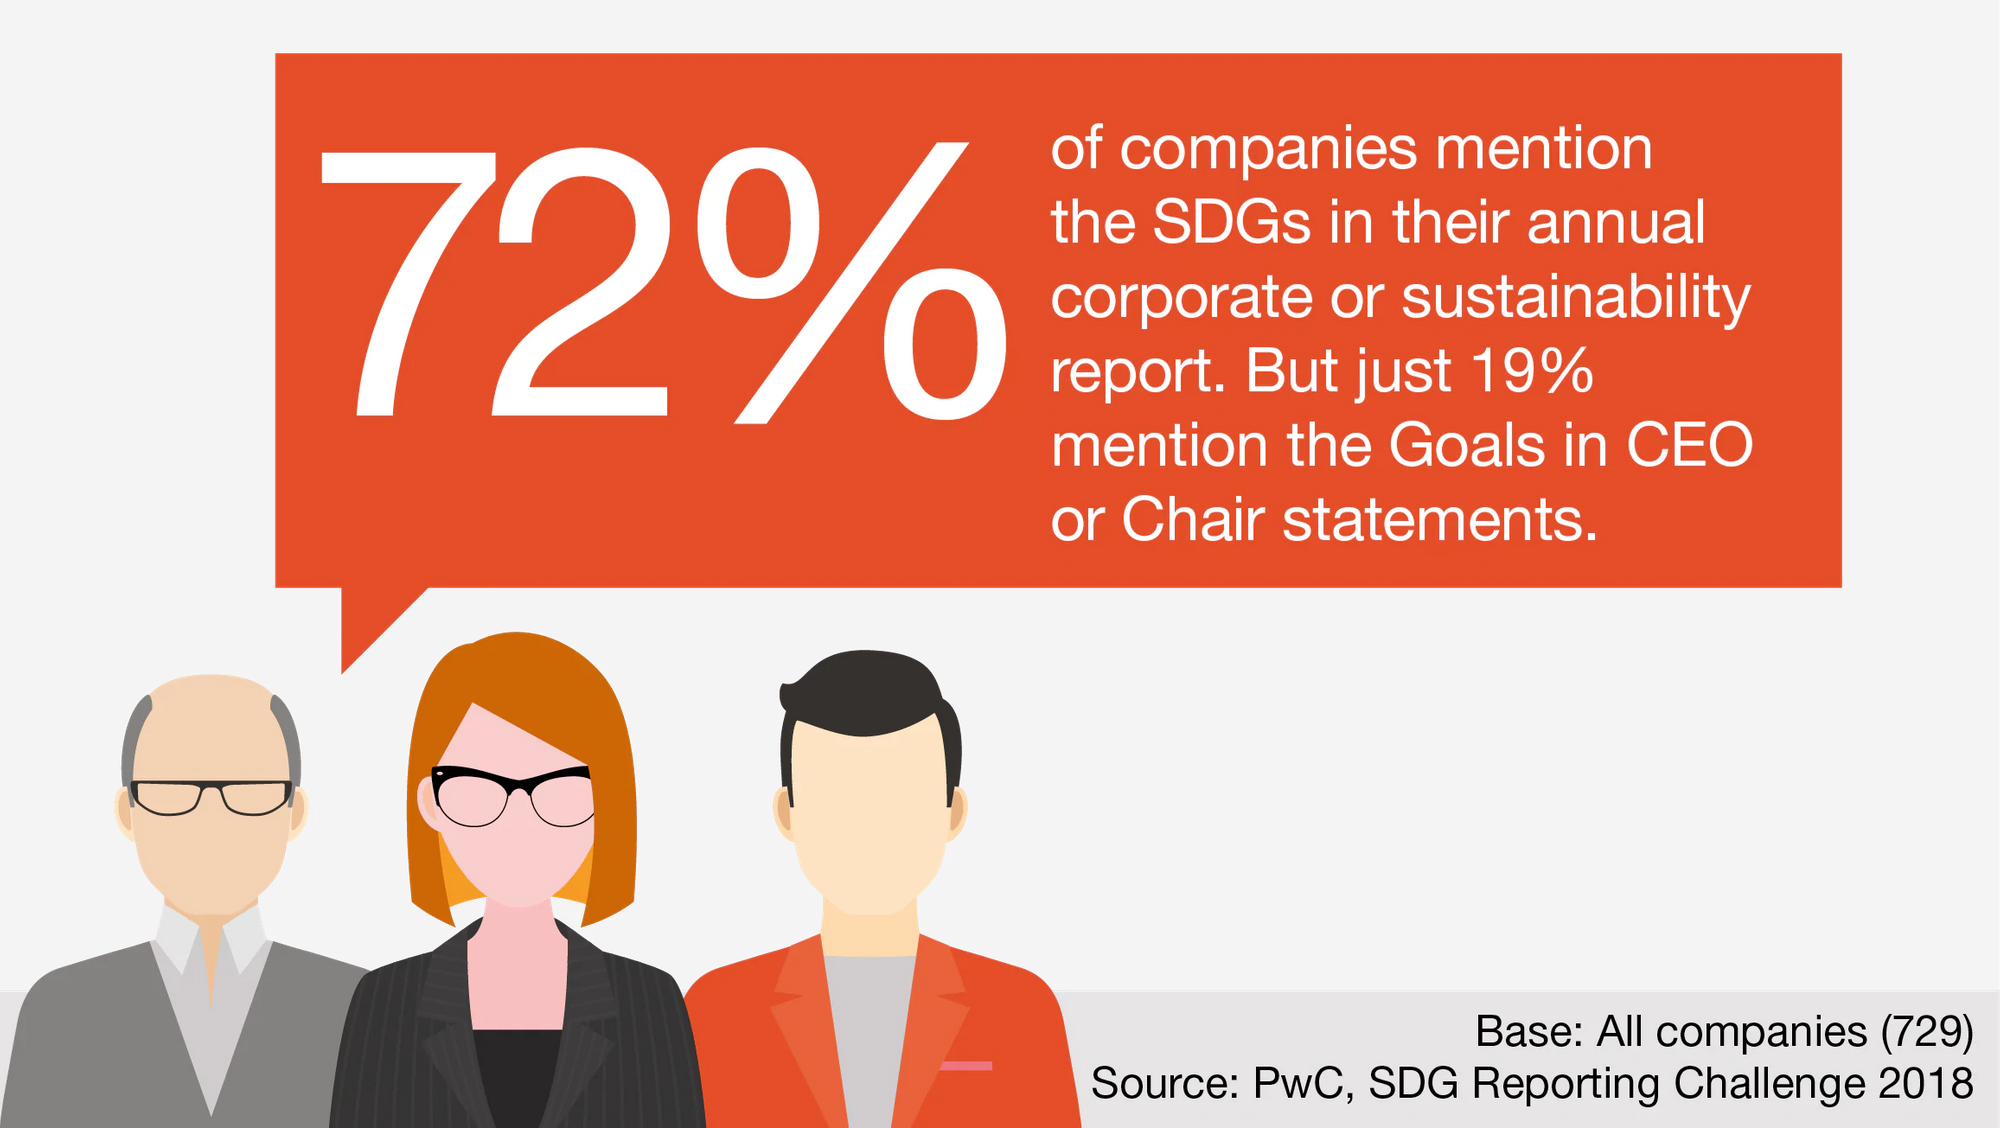 According to the PwC, while many companies mention SDGs in their annual reports, only a few mention the SDGs in CEO or Chair statements.